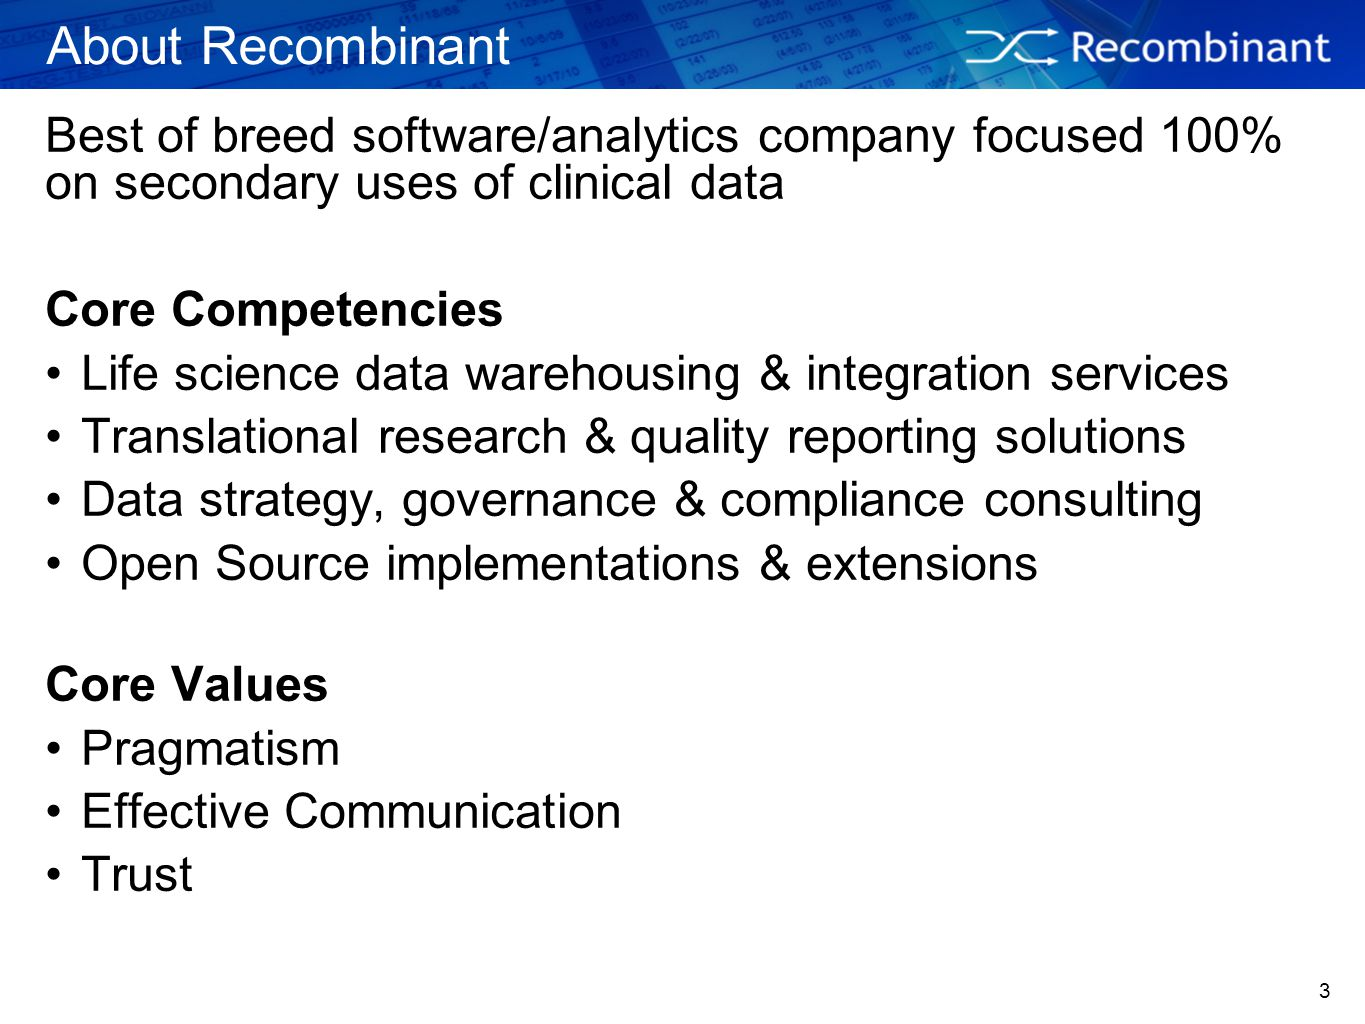 About Recombinant Best of breed software/analytics company focused 100% on secondary uses of clinical data.